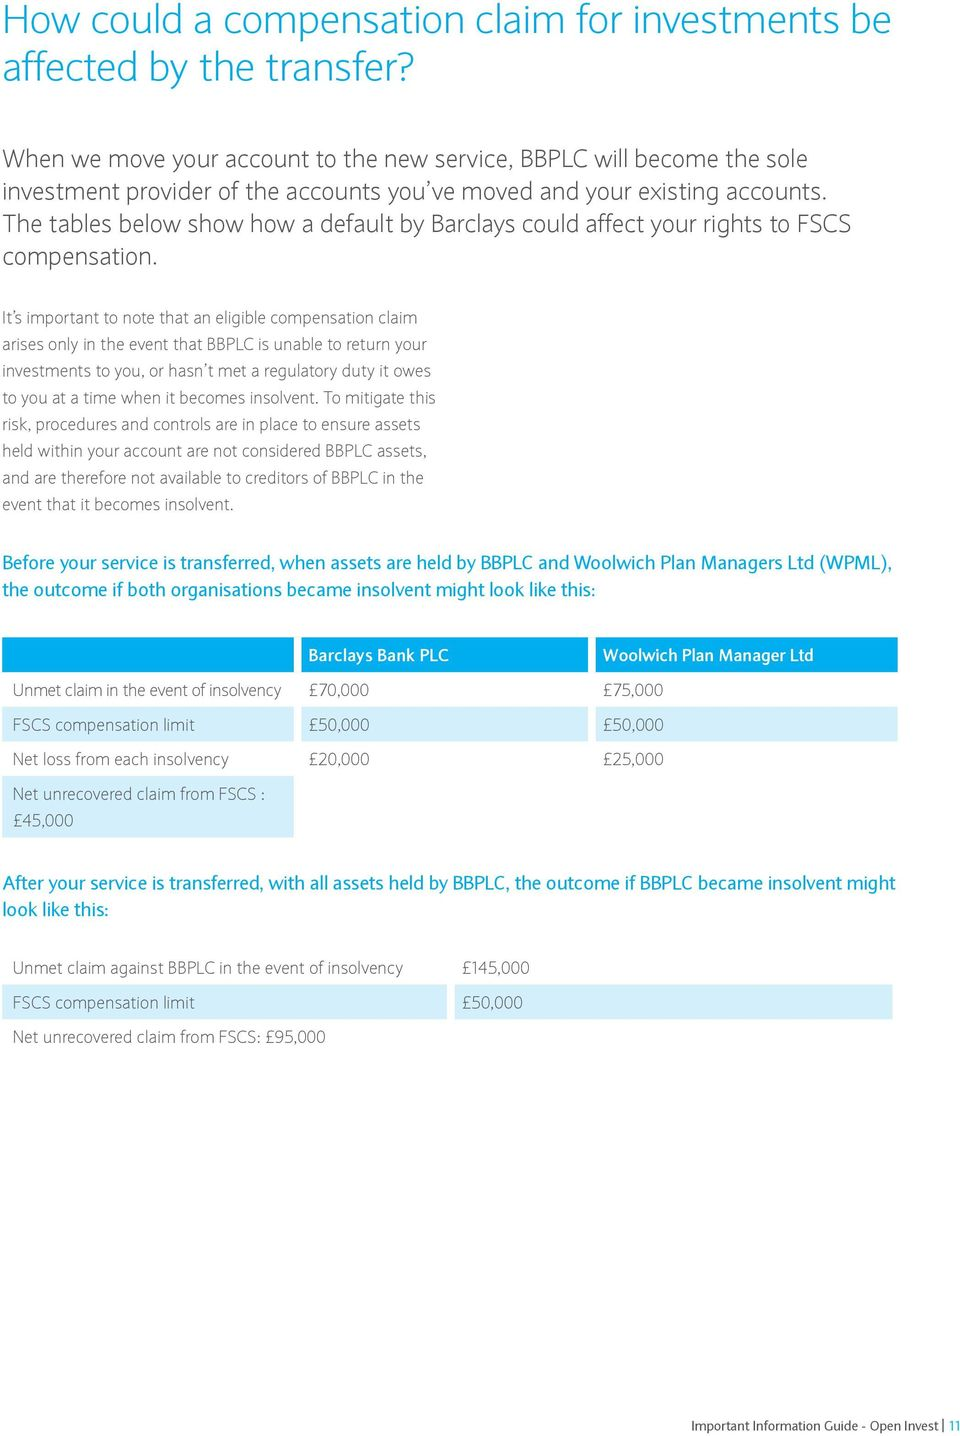 The tables below show how a default by Barclays could affect your rights to FSCS compensation.